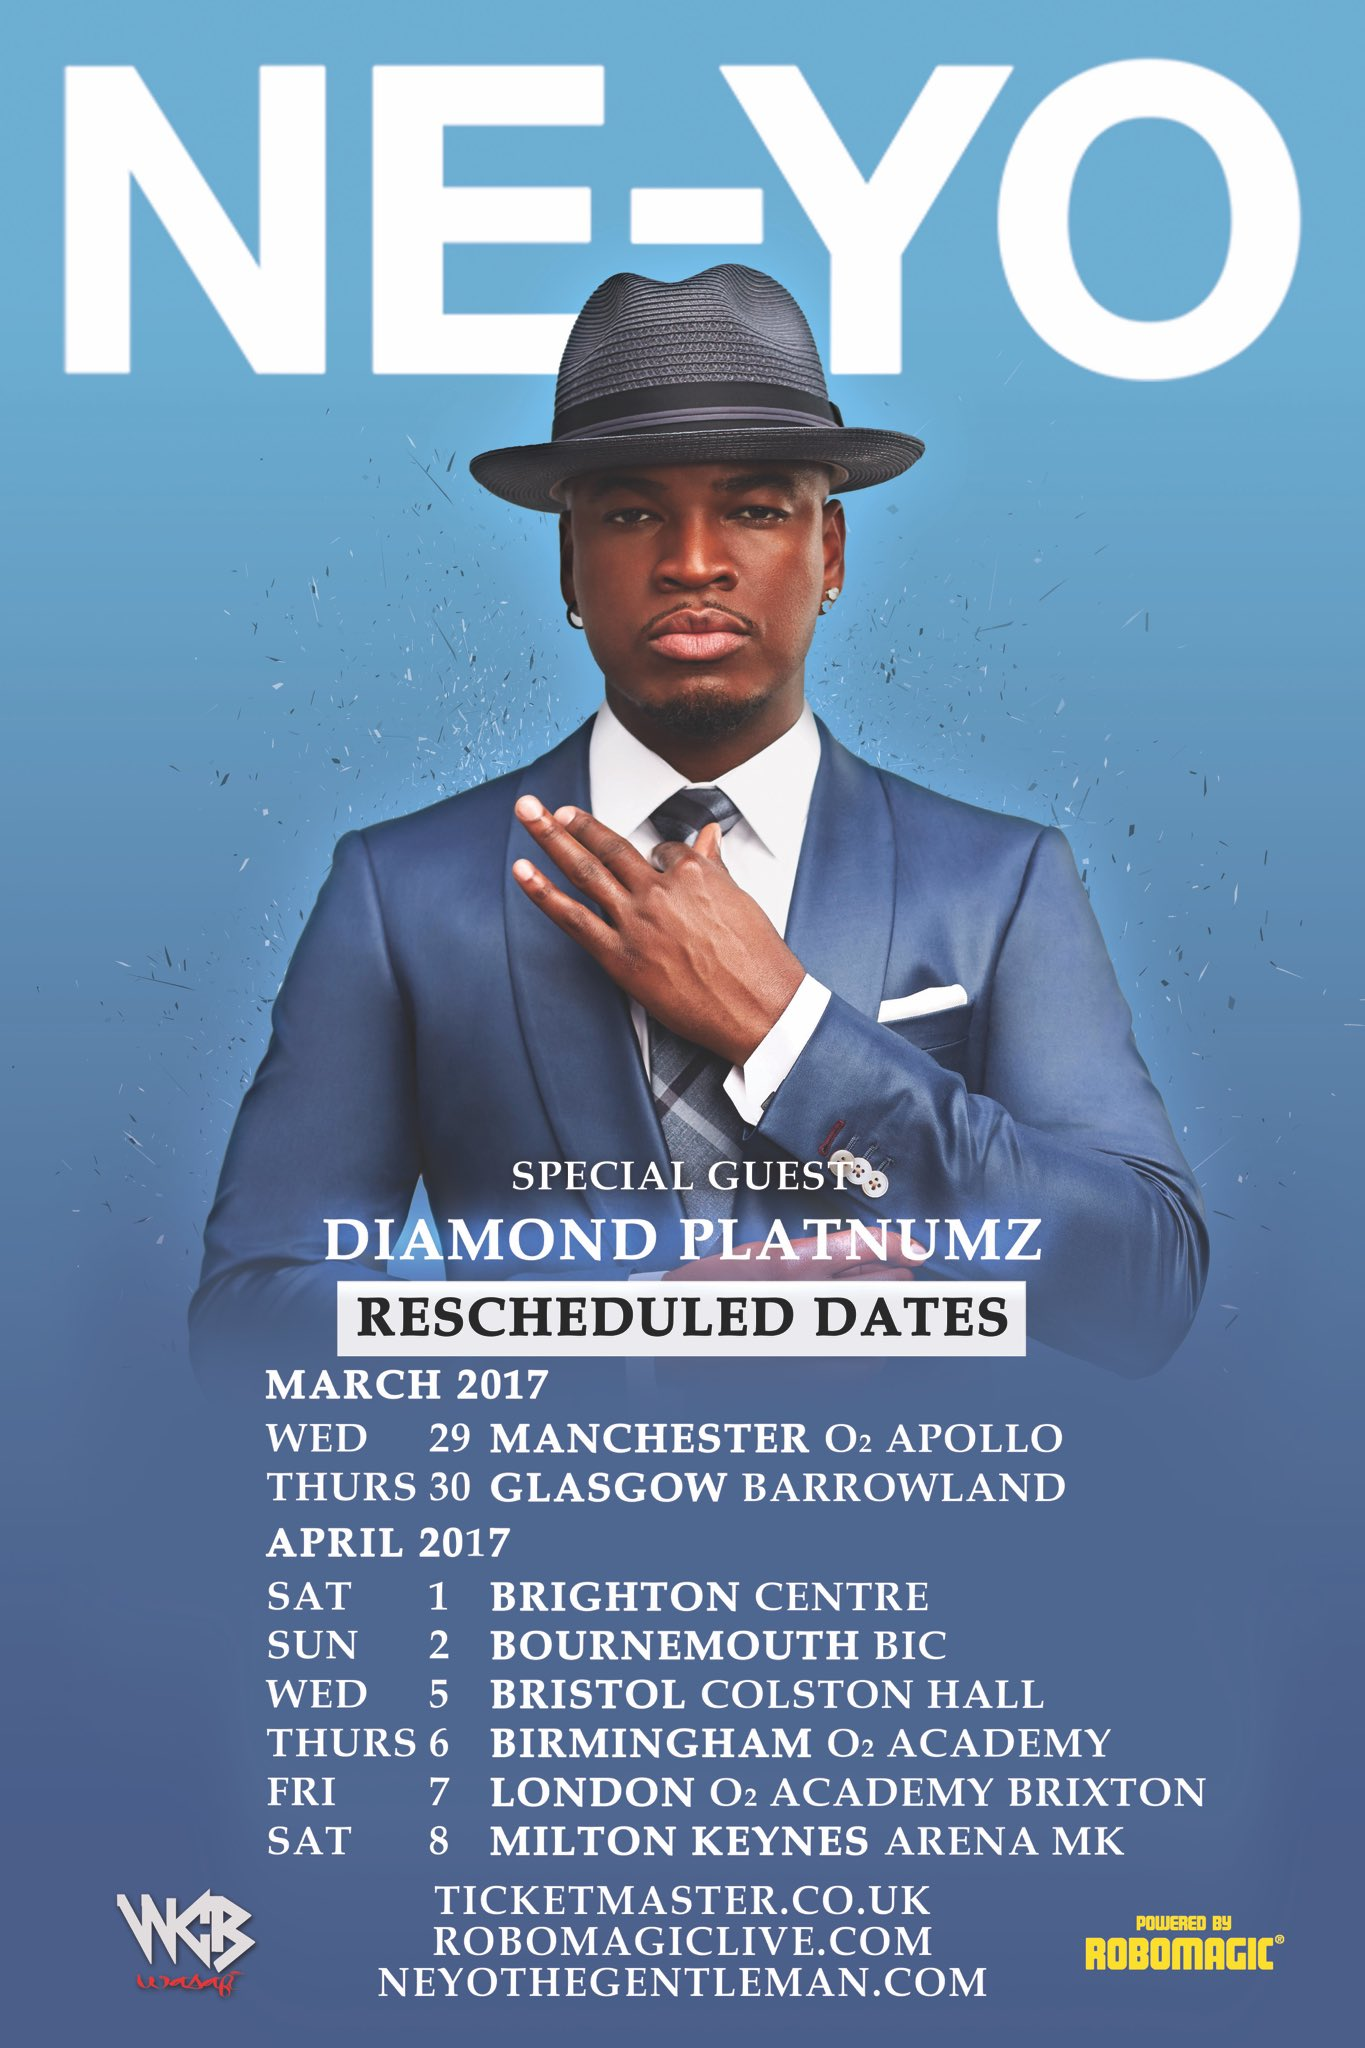 UK! I'm headed your way with NEW DATES with my bro @diamondplatnumz. 2017, let's turn up! #NEYOUKLive https://t.co/EOAh4TPOY7